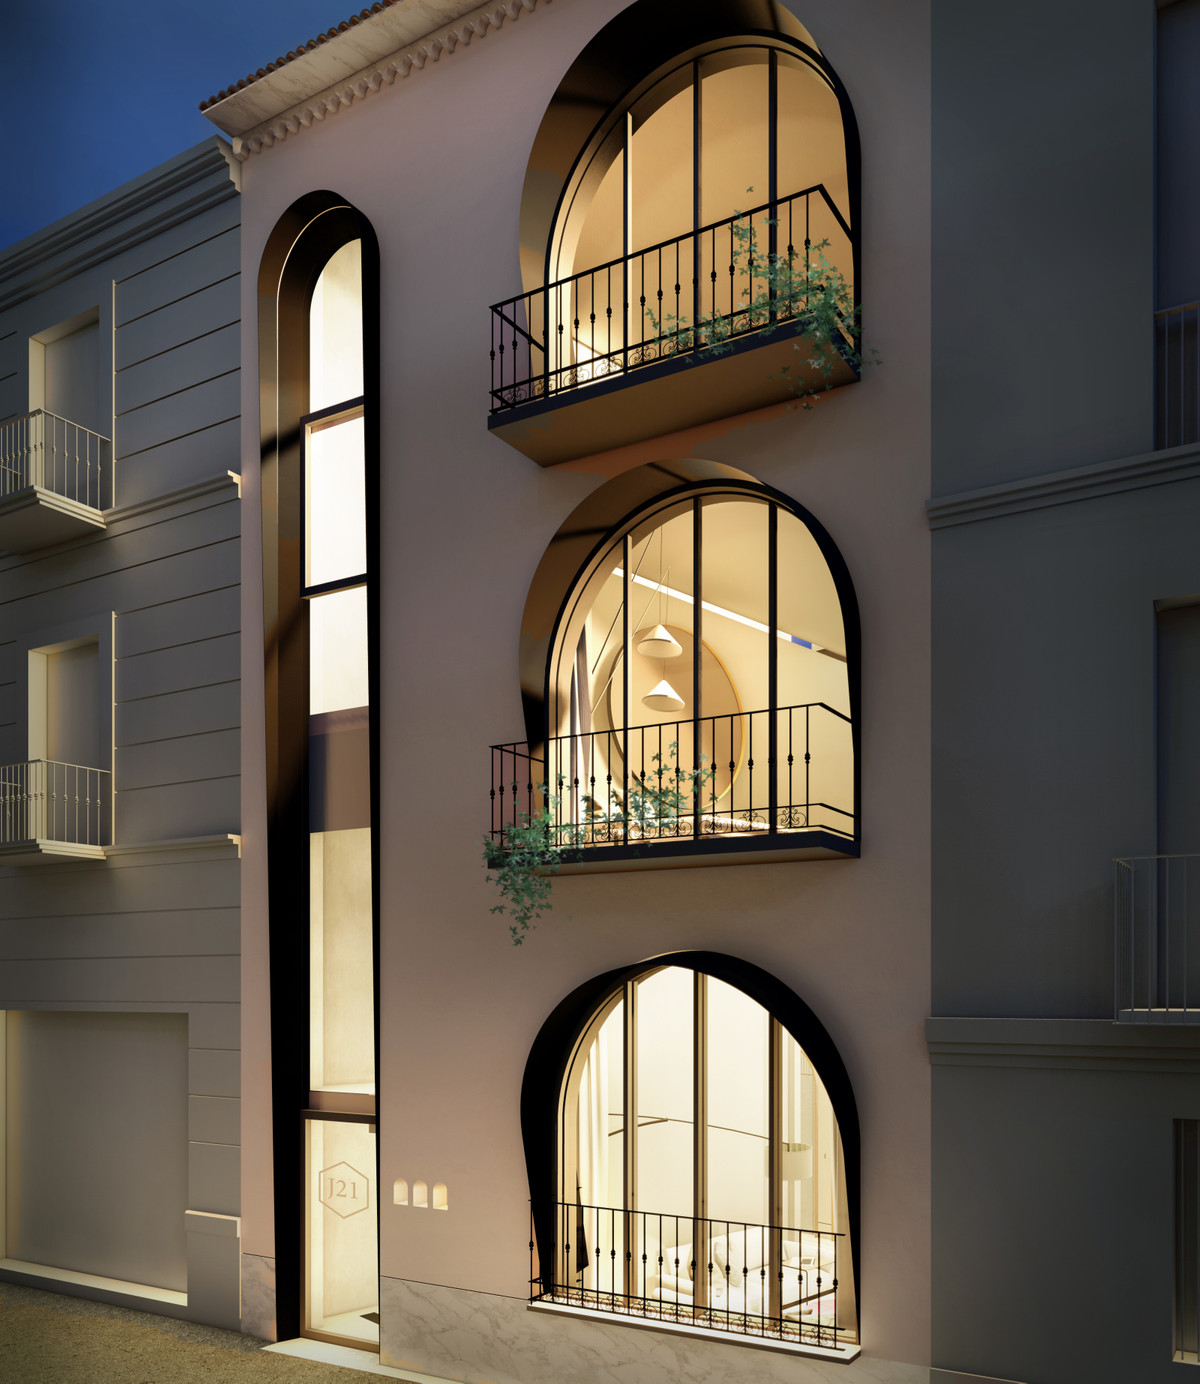 New Development: Prices from € 245,000 to € 385,000. [Beds: 1 - 2] [Bath, Spain